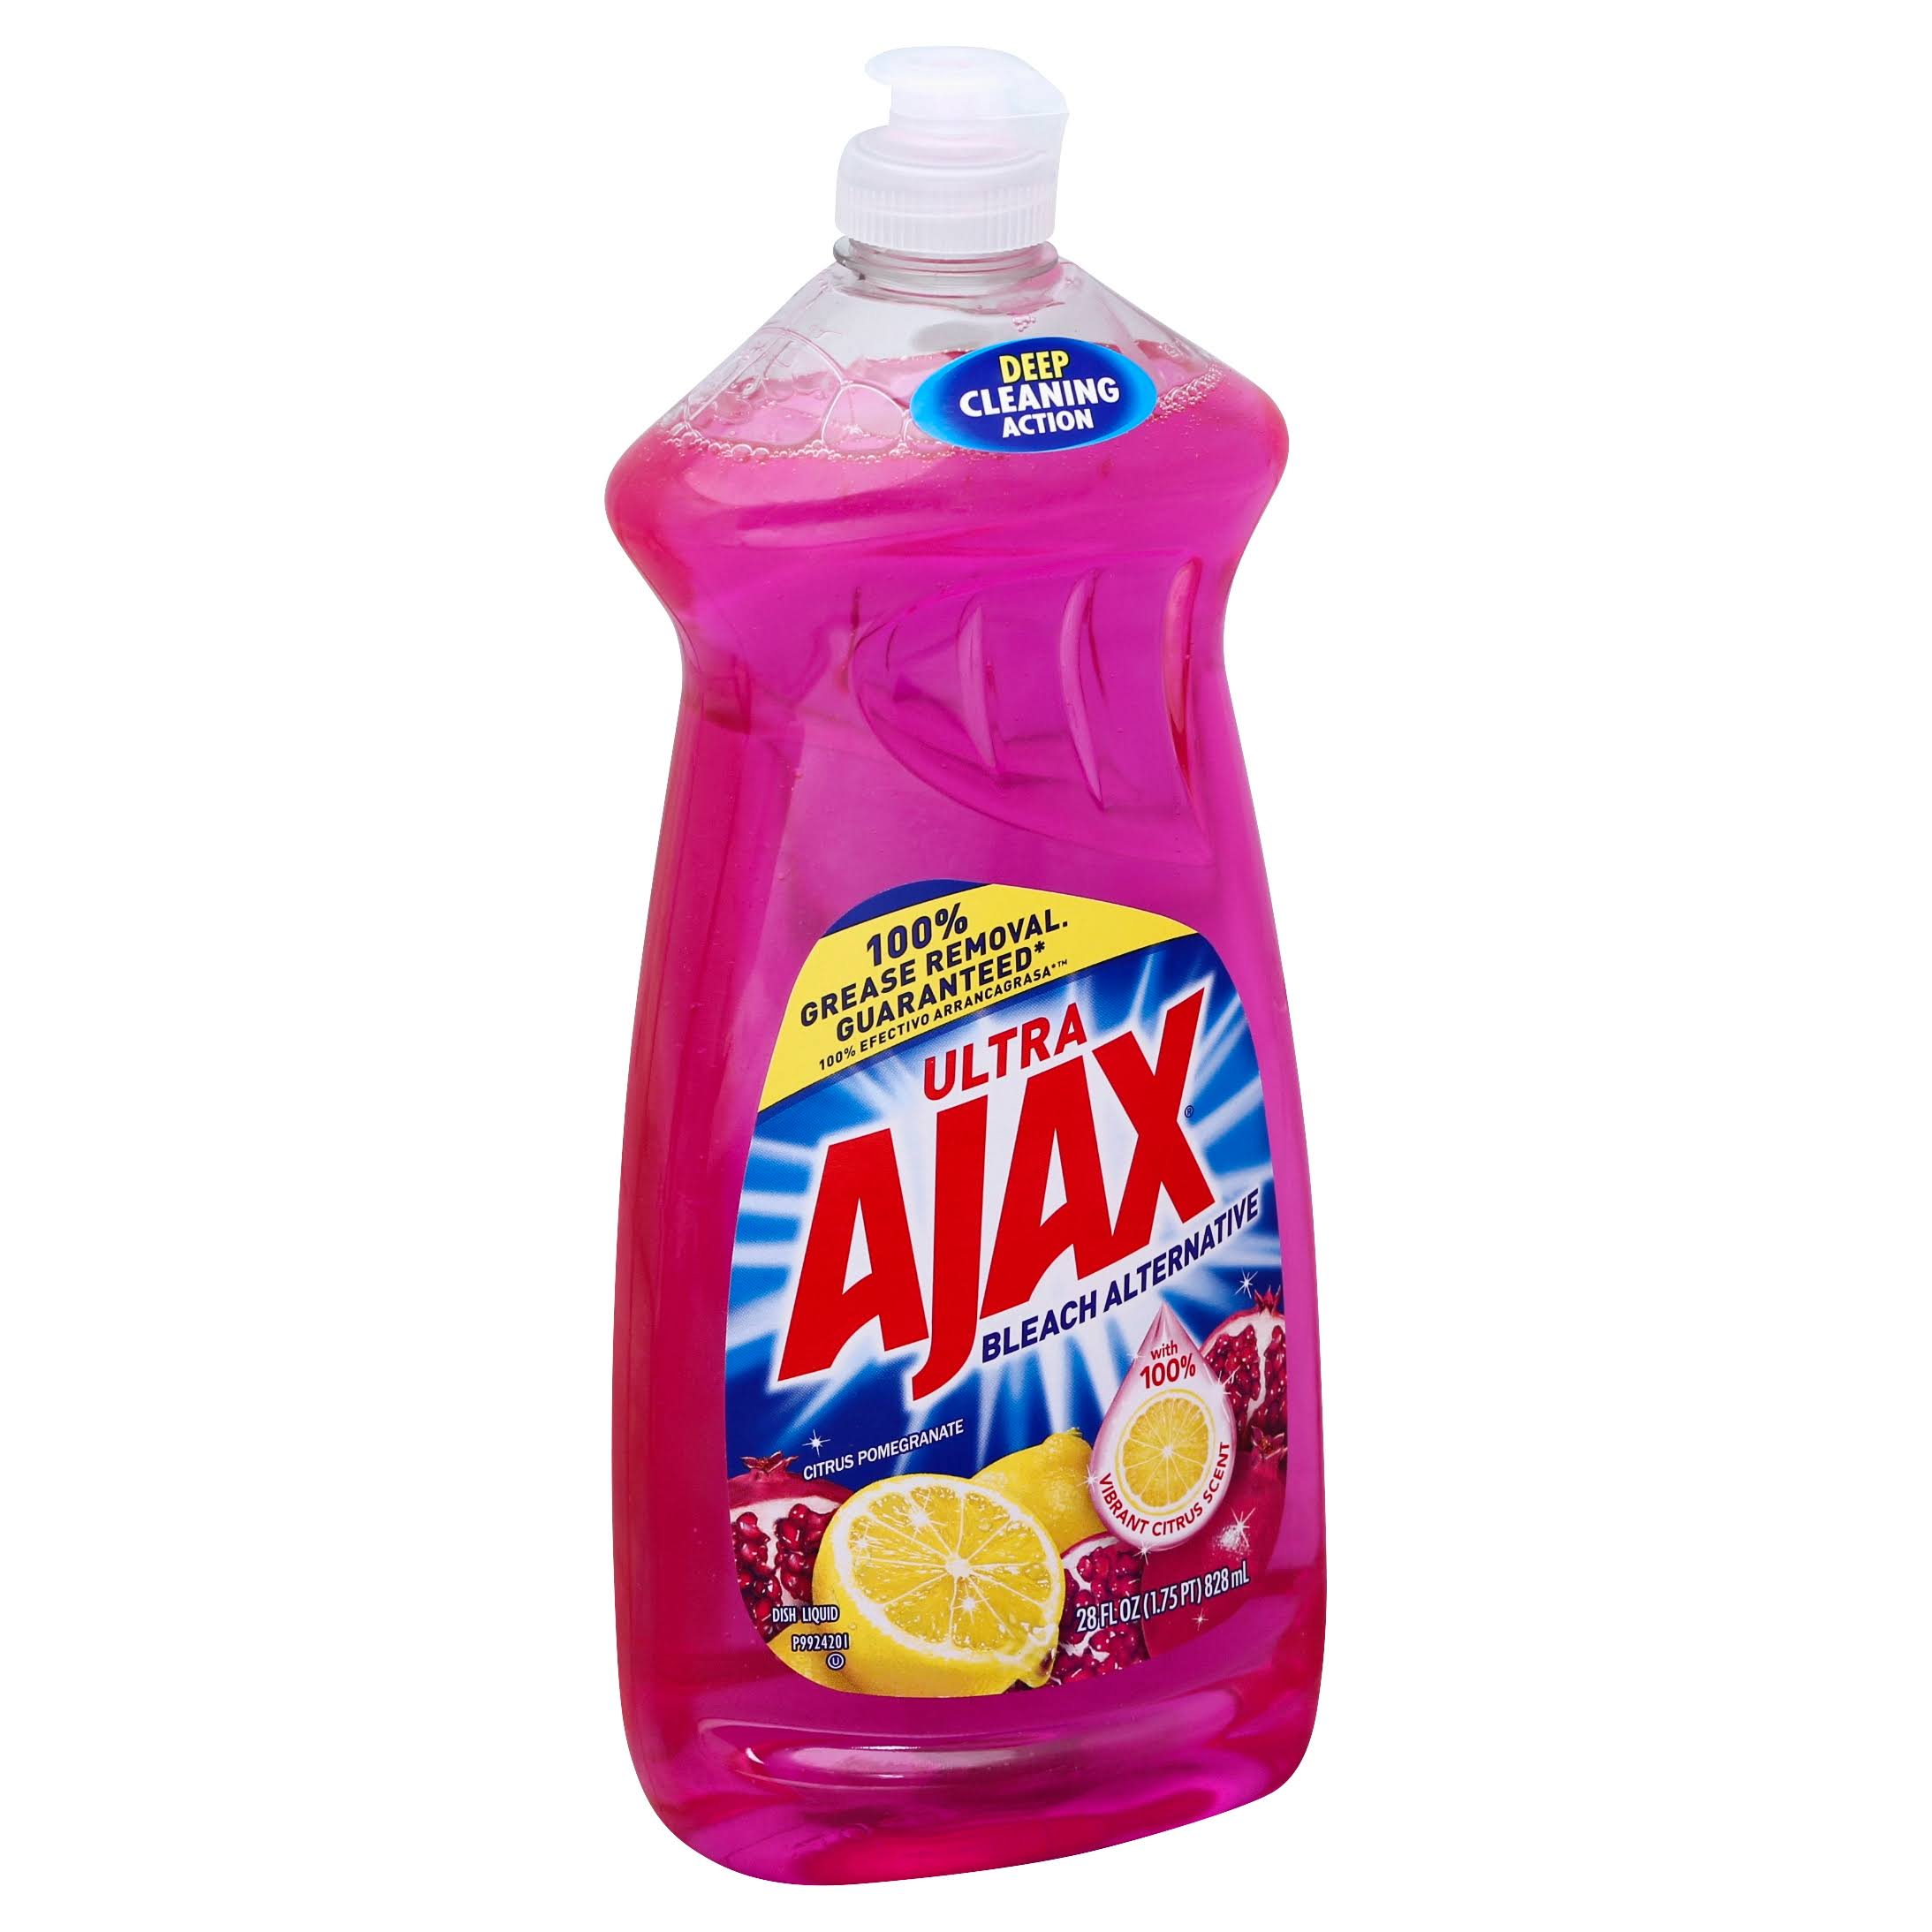 Ajax Ultra Dish Liquid, Citrus Pomegranate - 28 fl oz